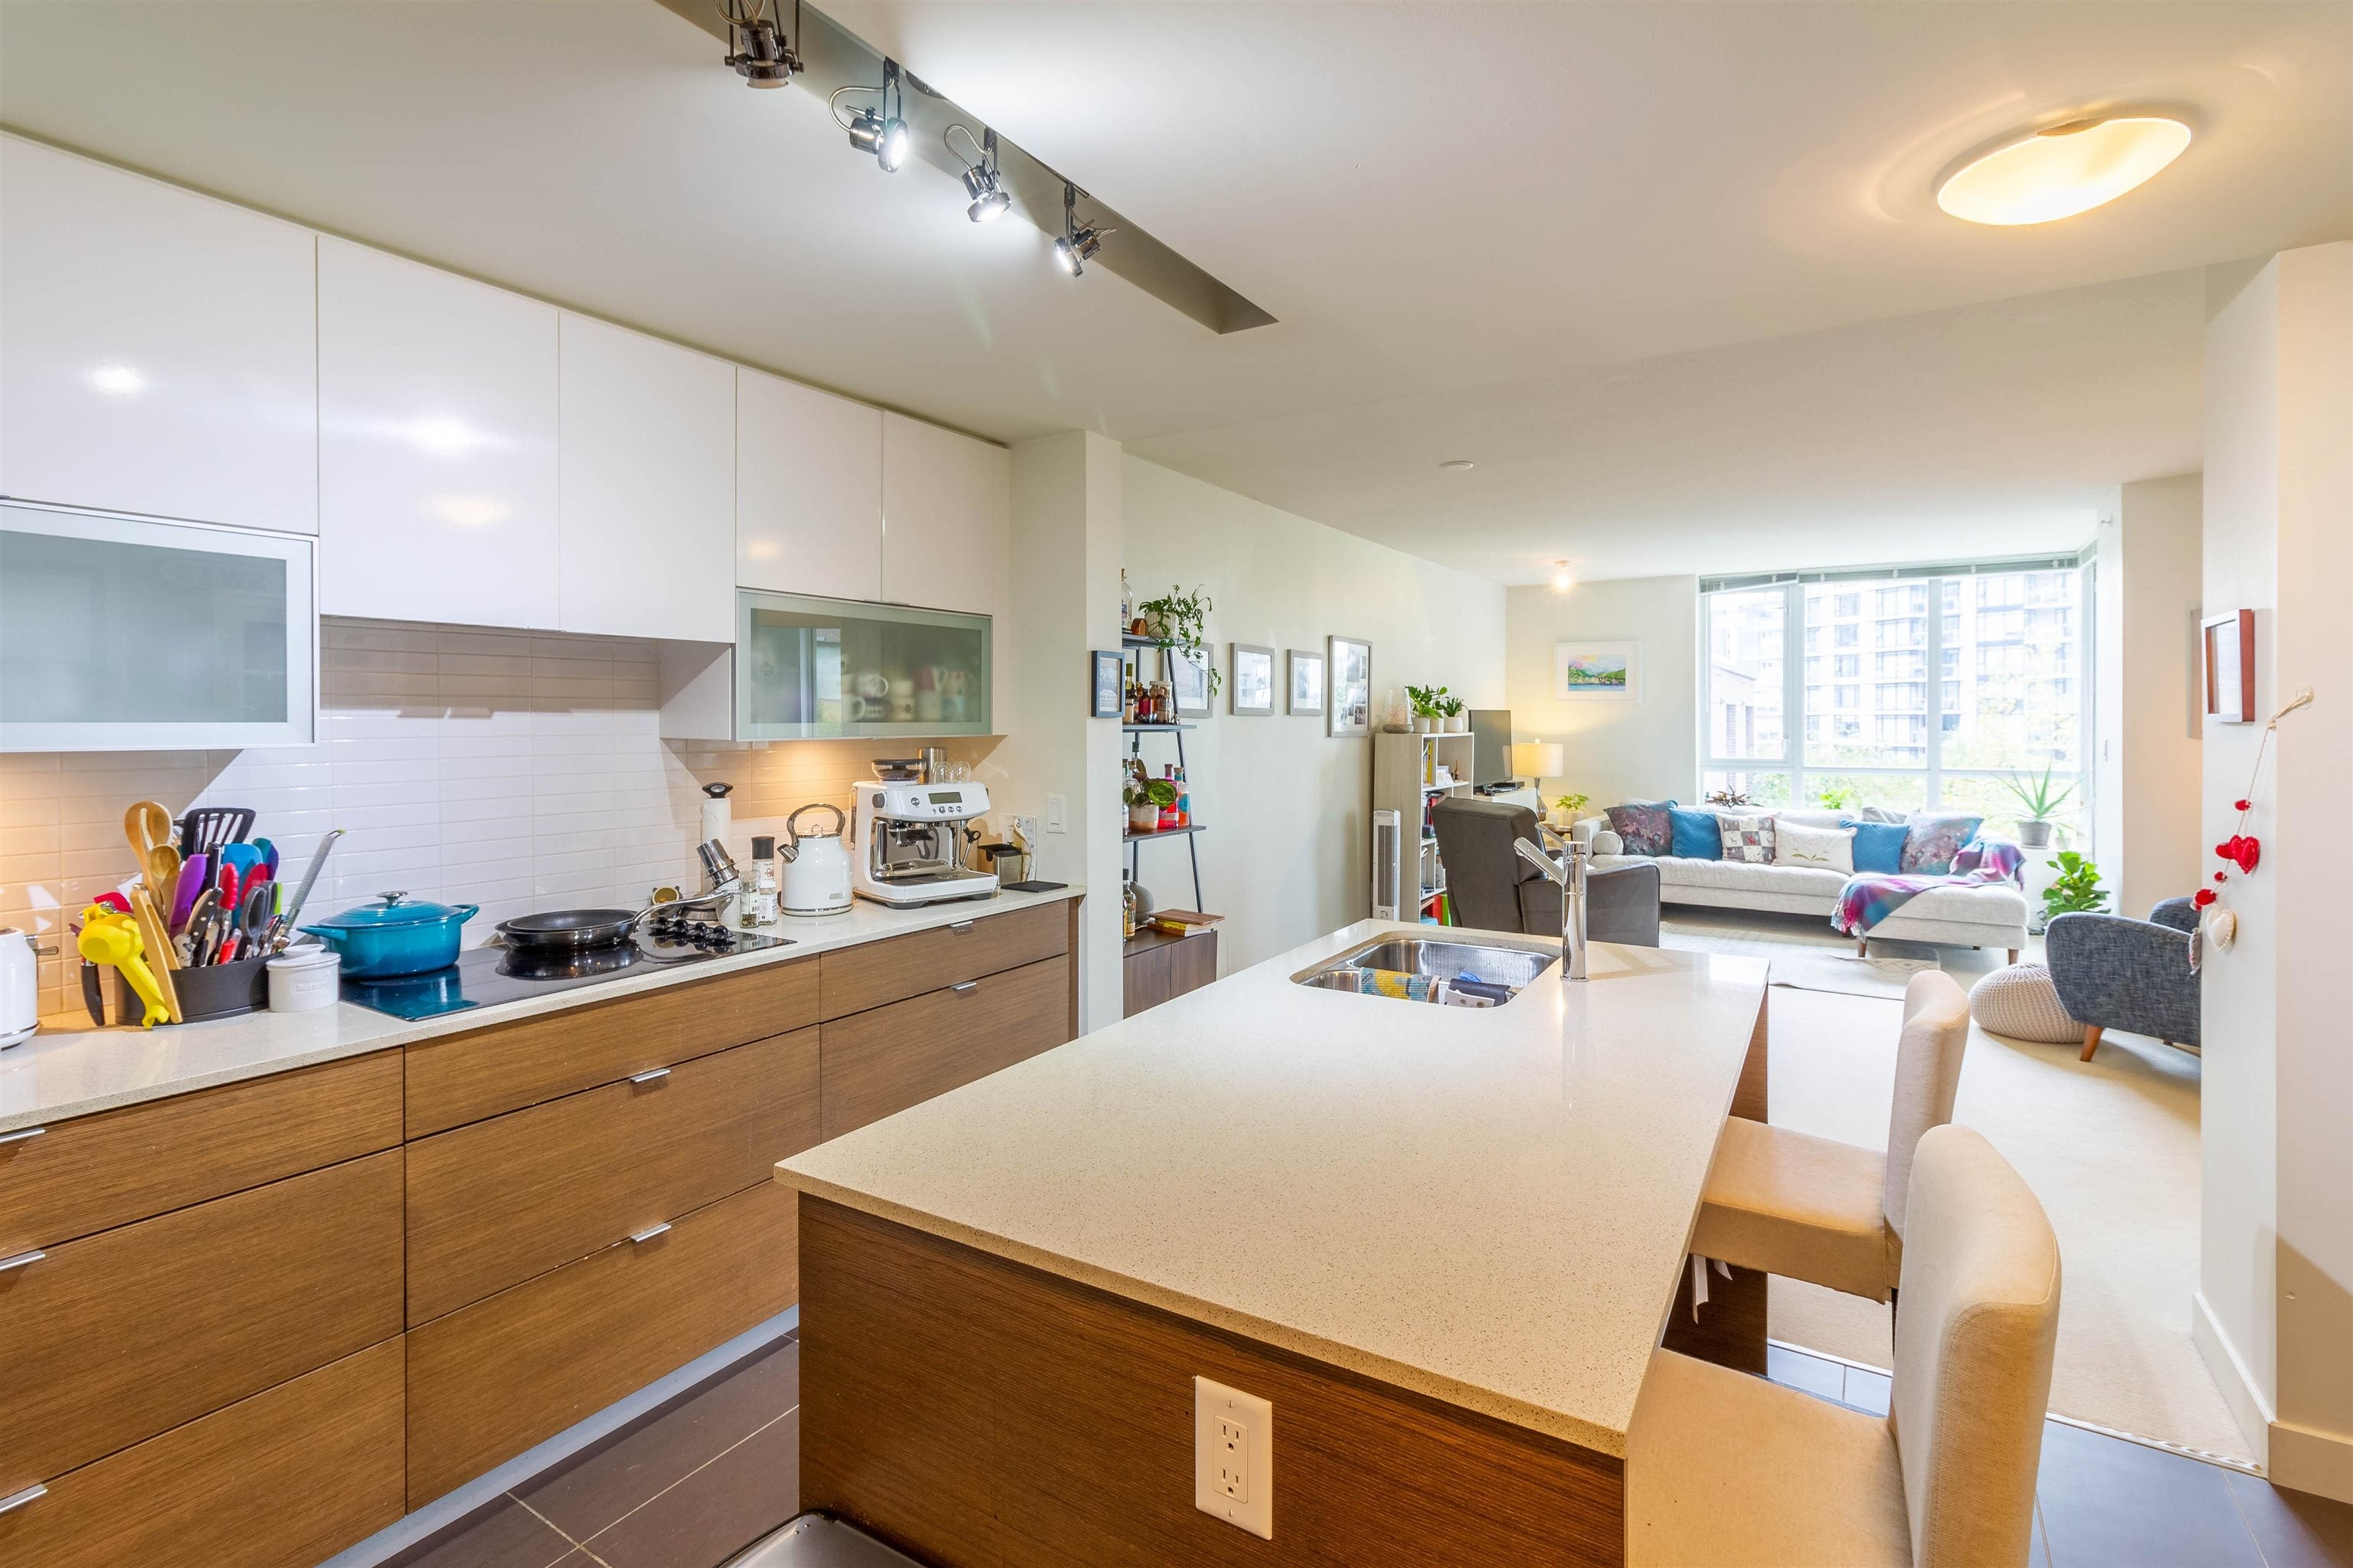 208 175 W 2ND STREET - Lower Lonsdale Apartment/Condo for sale, 1 Bedroom (R2625562) - #13